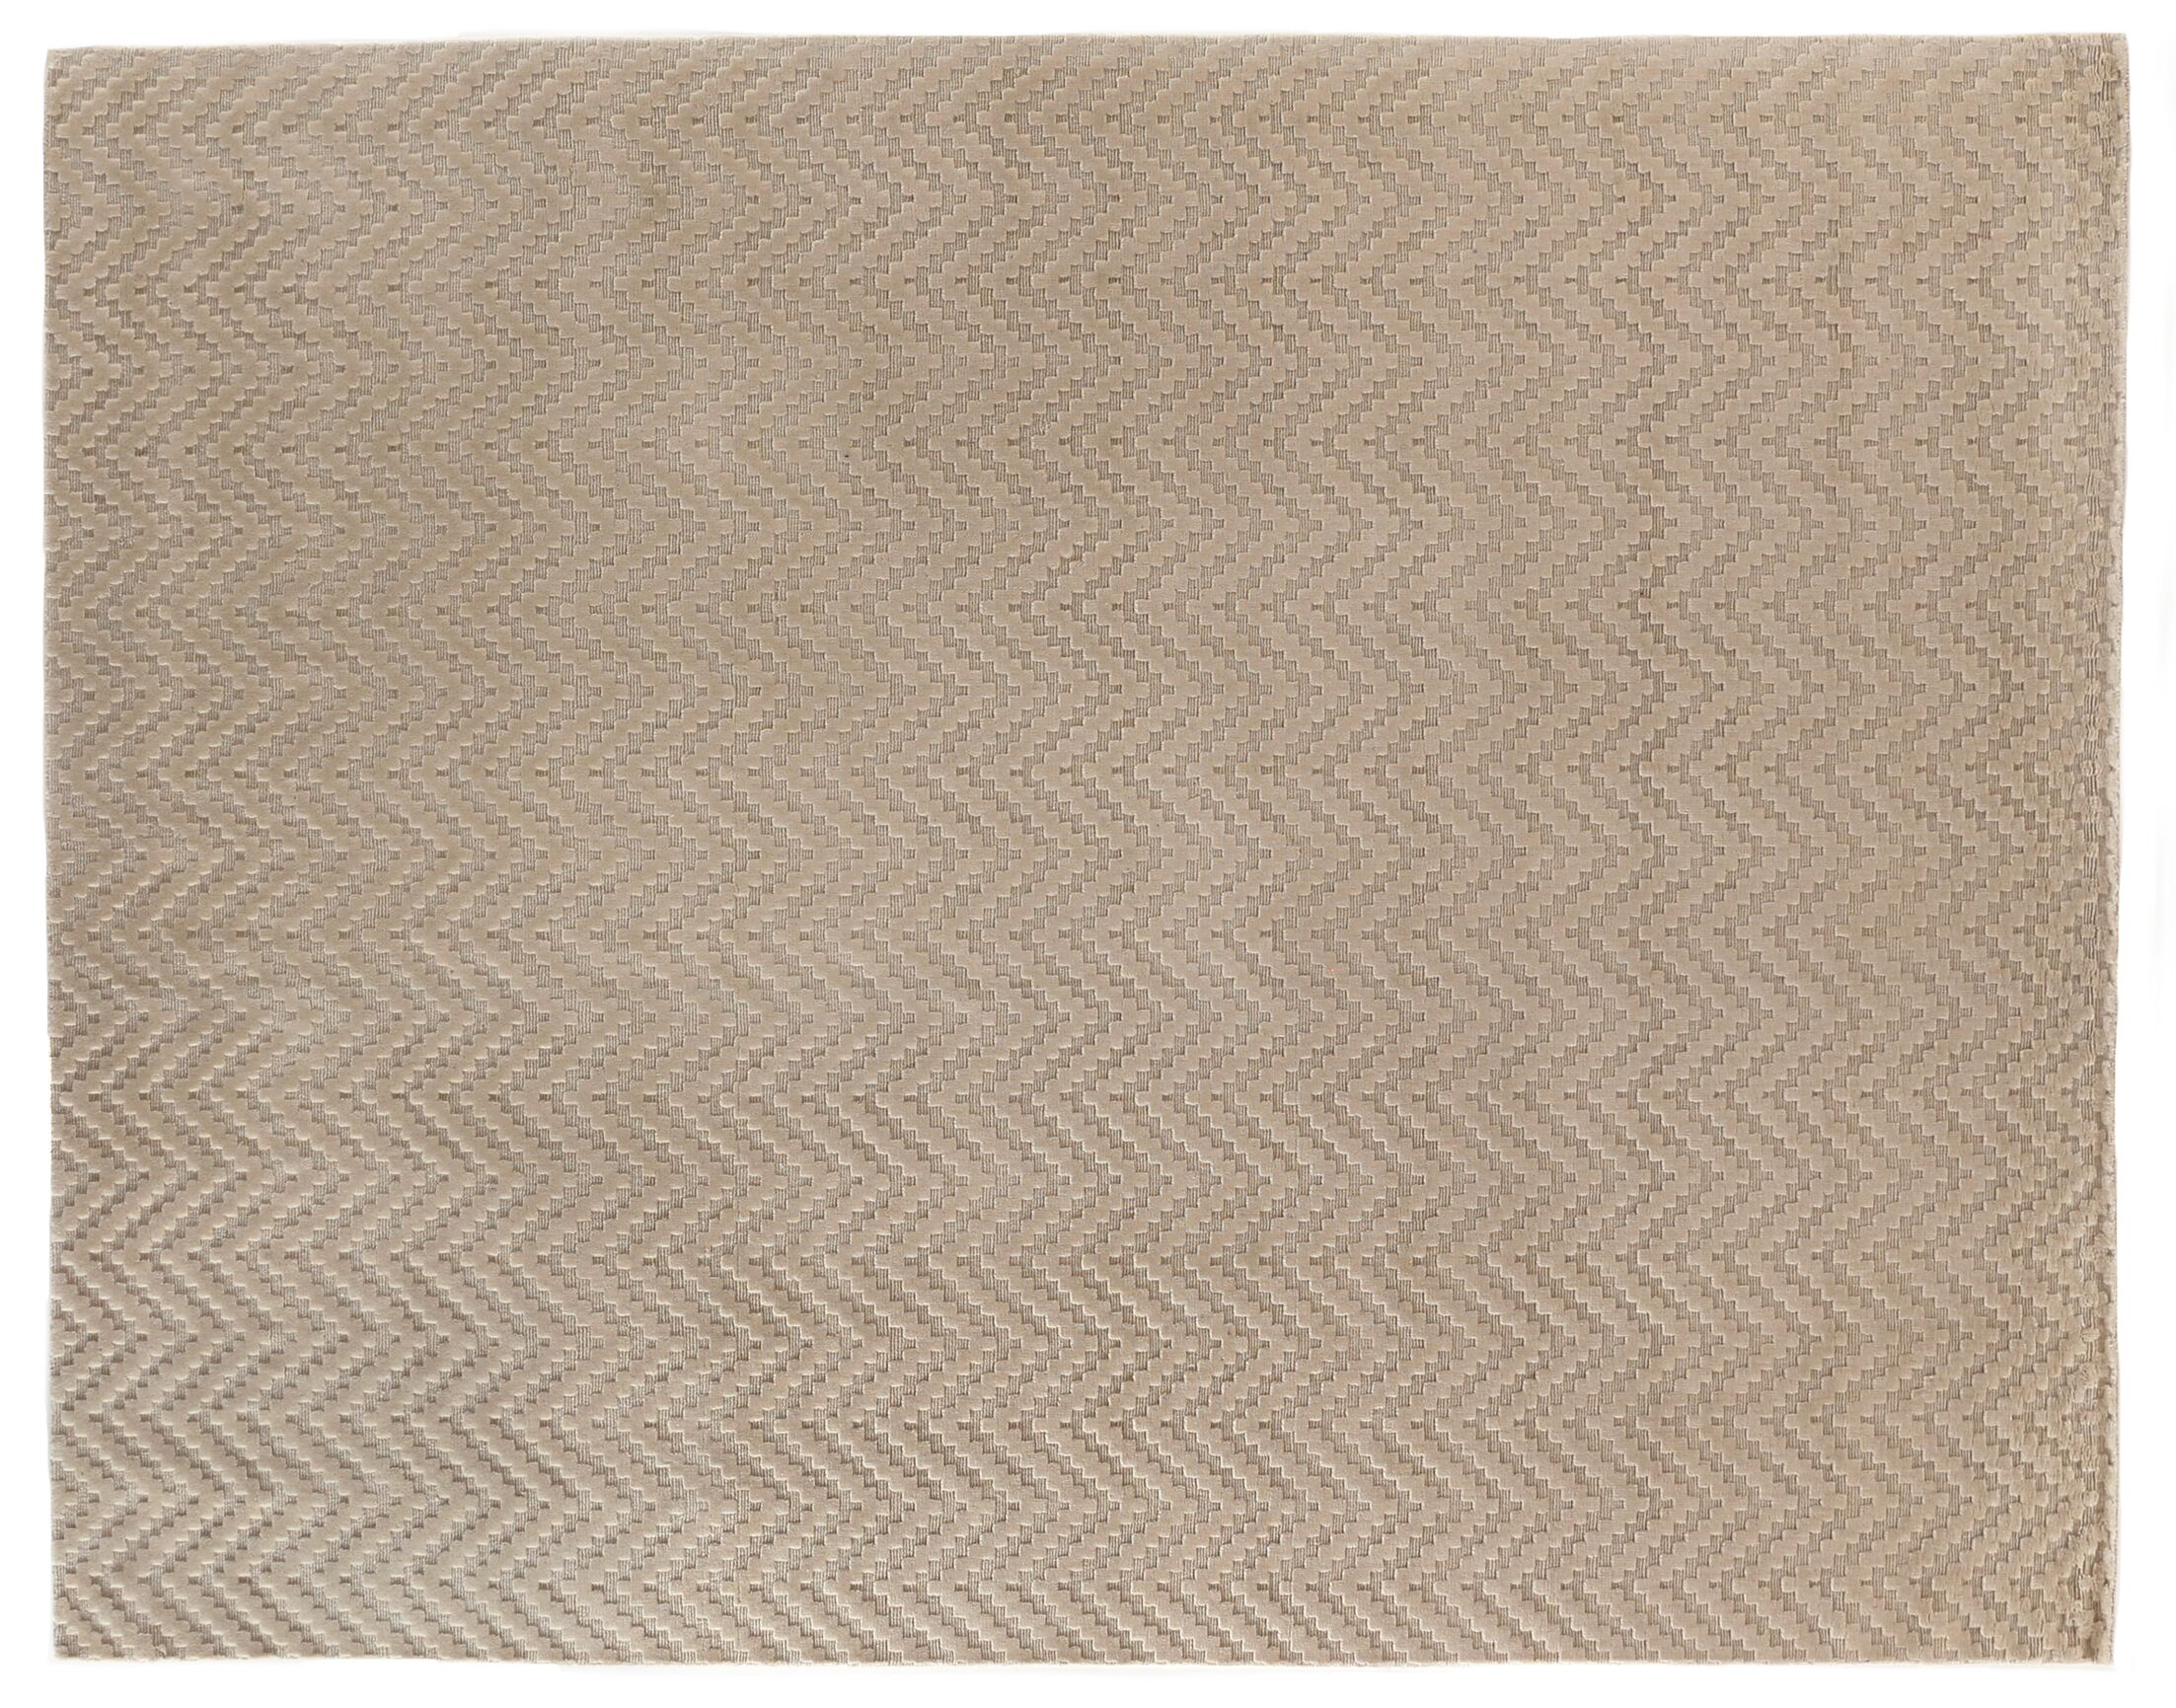 Demani Hand Woven Wool Brown Area Rug Rug Size: Rectangle 14' x 18'